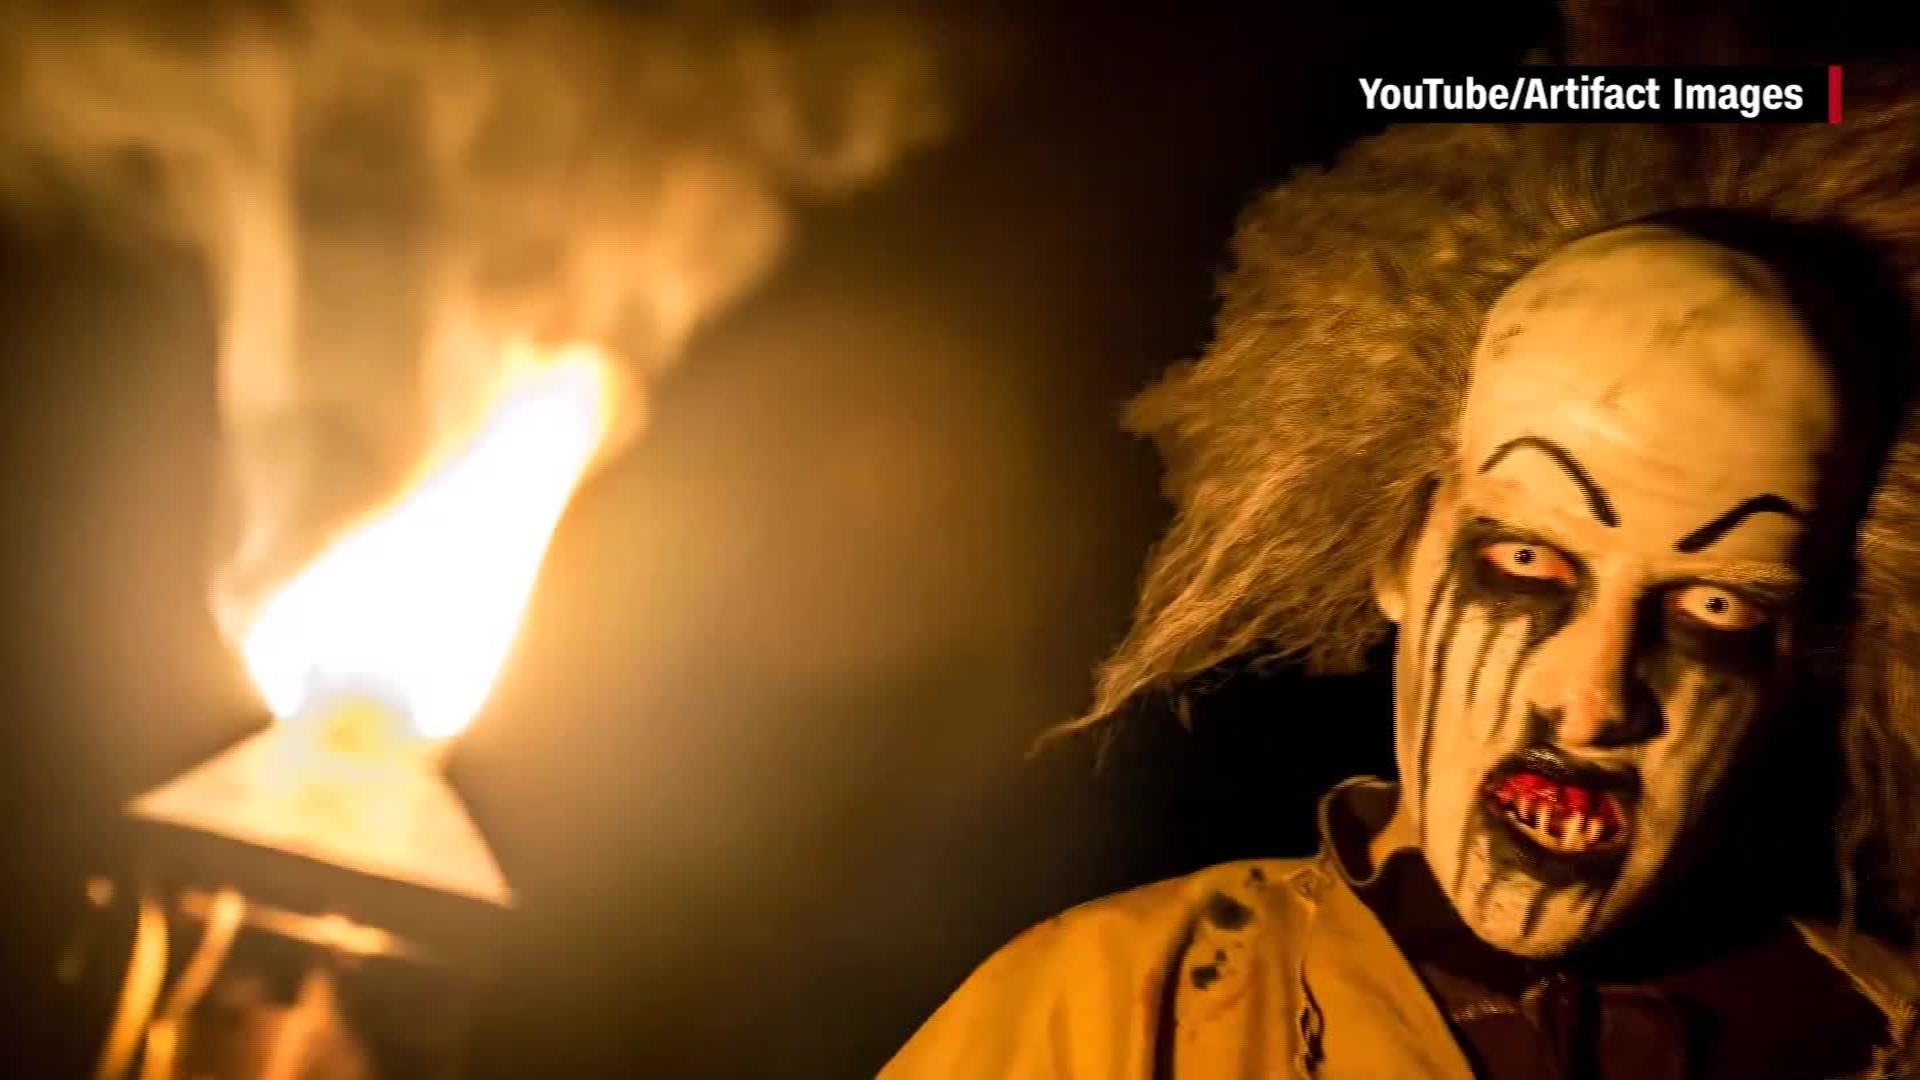 5 haunted attractions you can't miss this halloween - cnn video